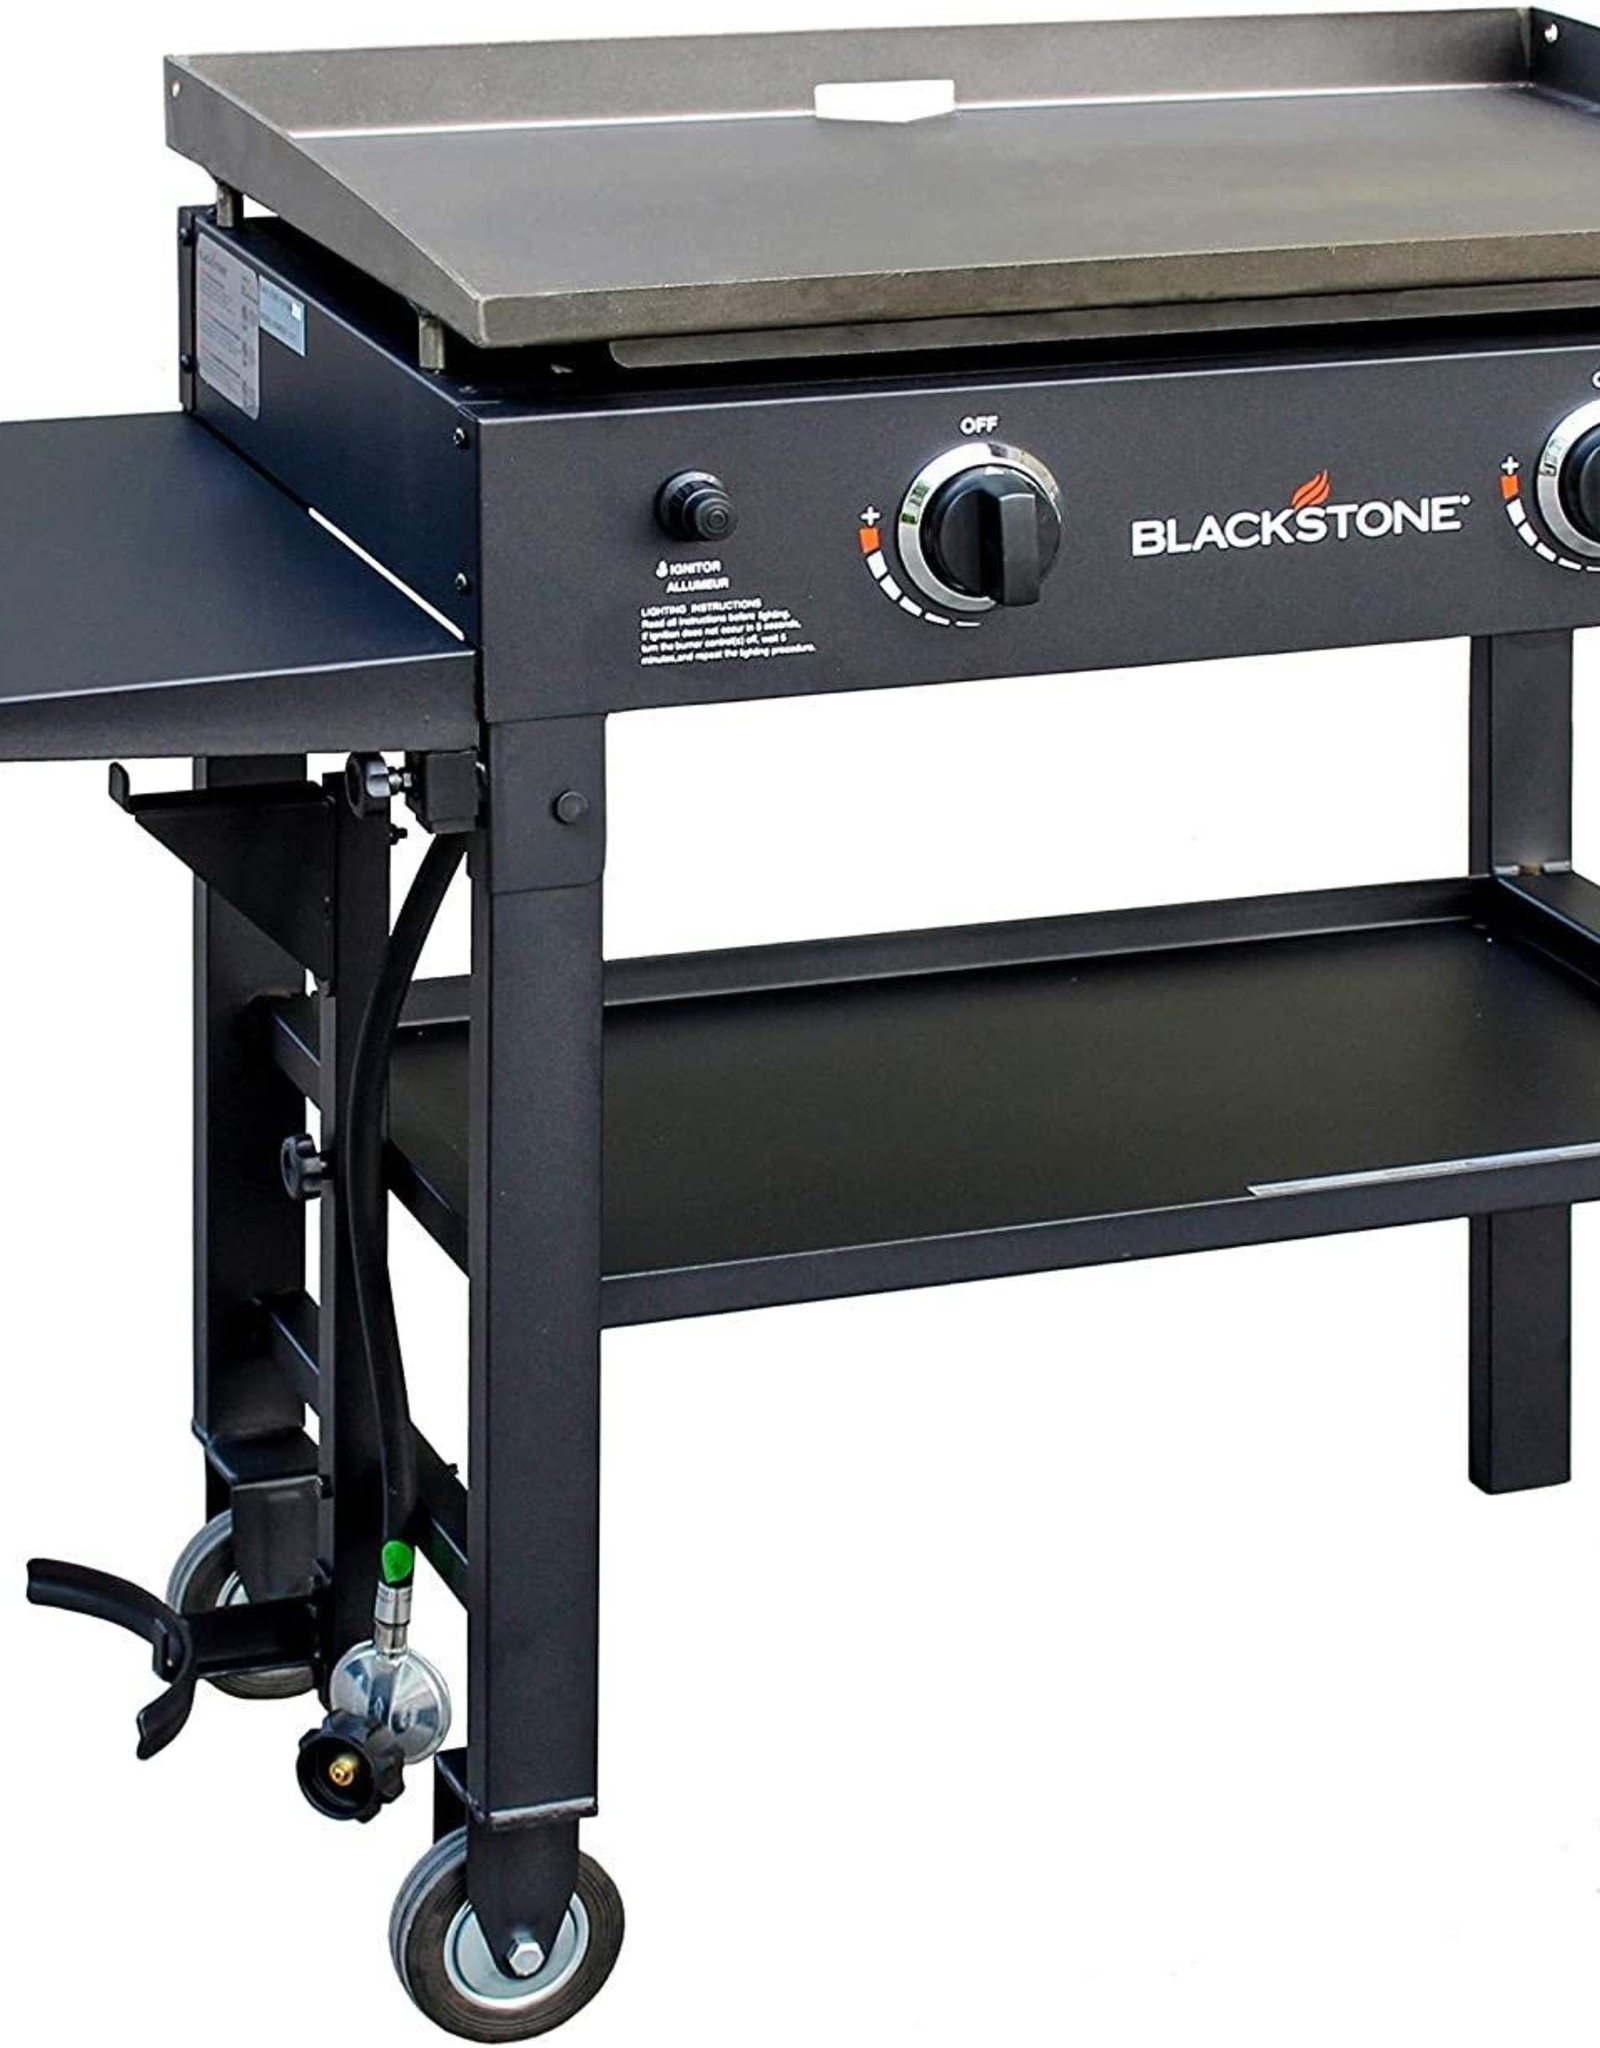 "Blackstone Blackstone 28"" 2 Burner Griddle Cooking Station 1517"